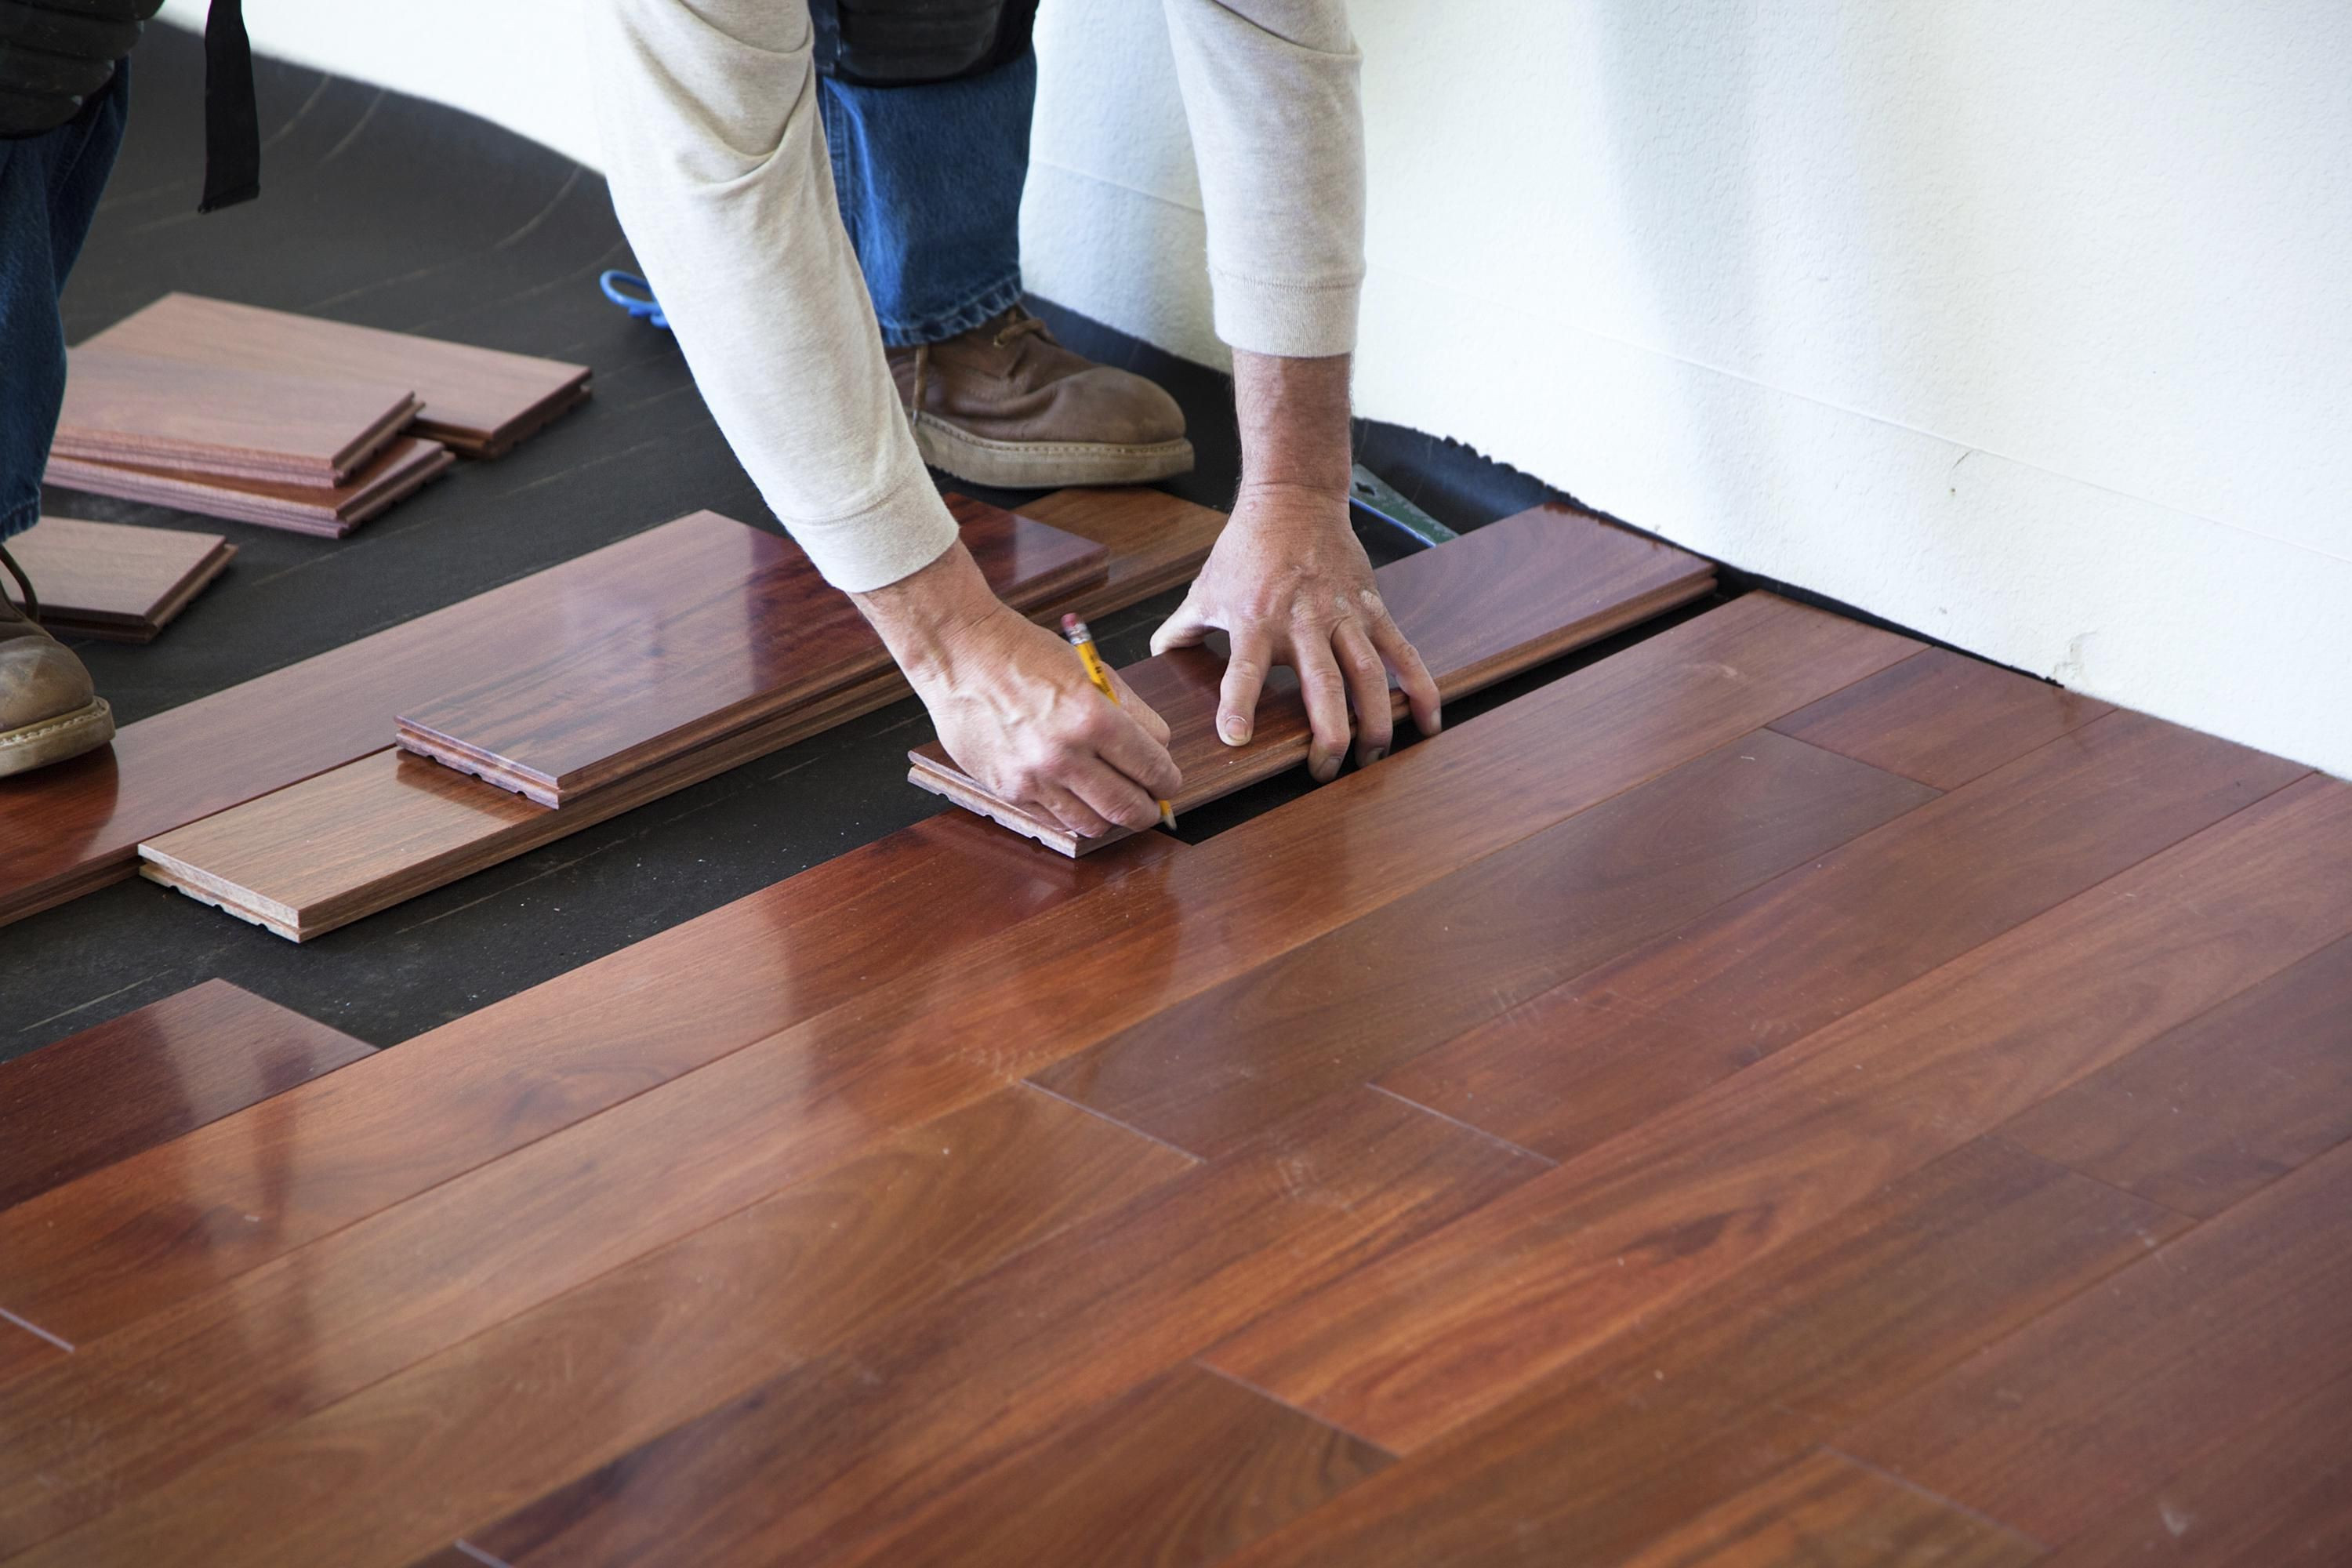 hardwood flooring prices of 18 new how much do hardwood floors cost image dizpos com intended for how much do hardwood floors cost inspirational this is how much hardwood flooring to order images